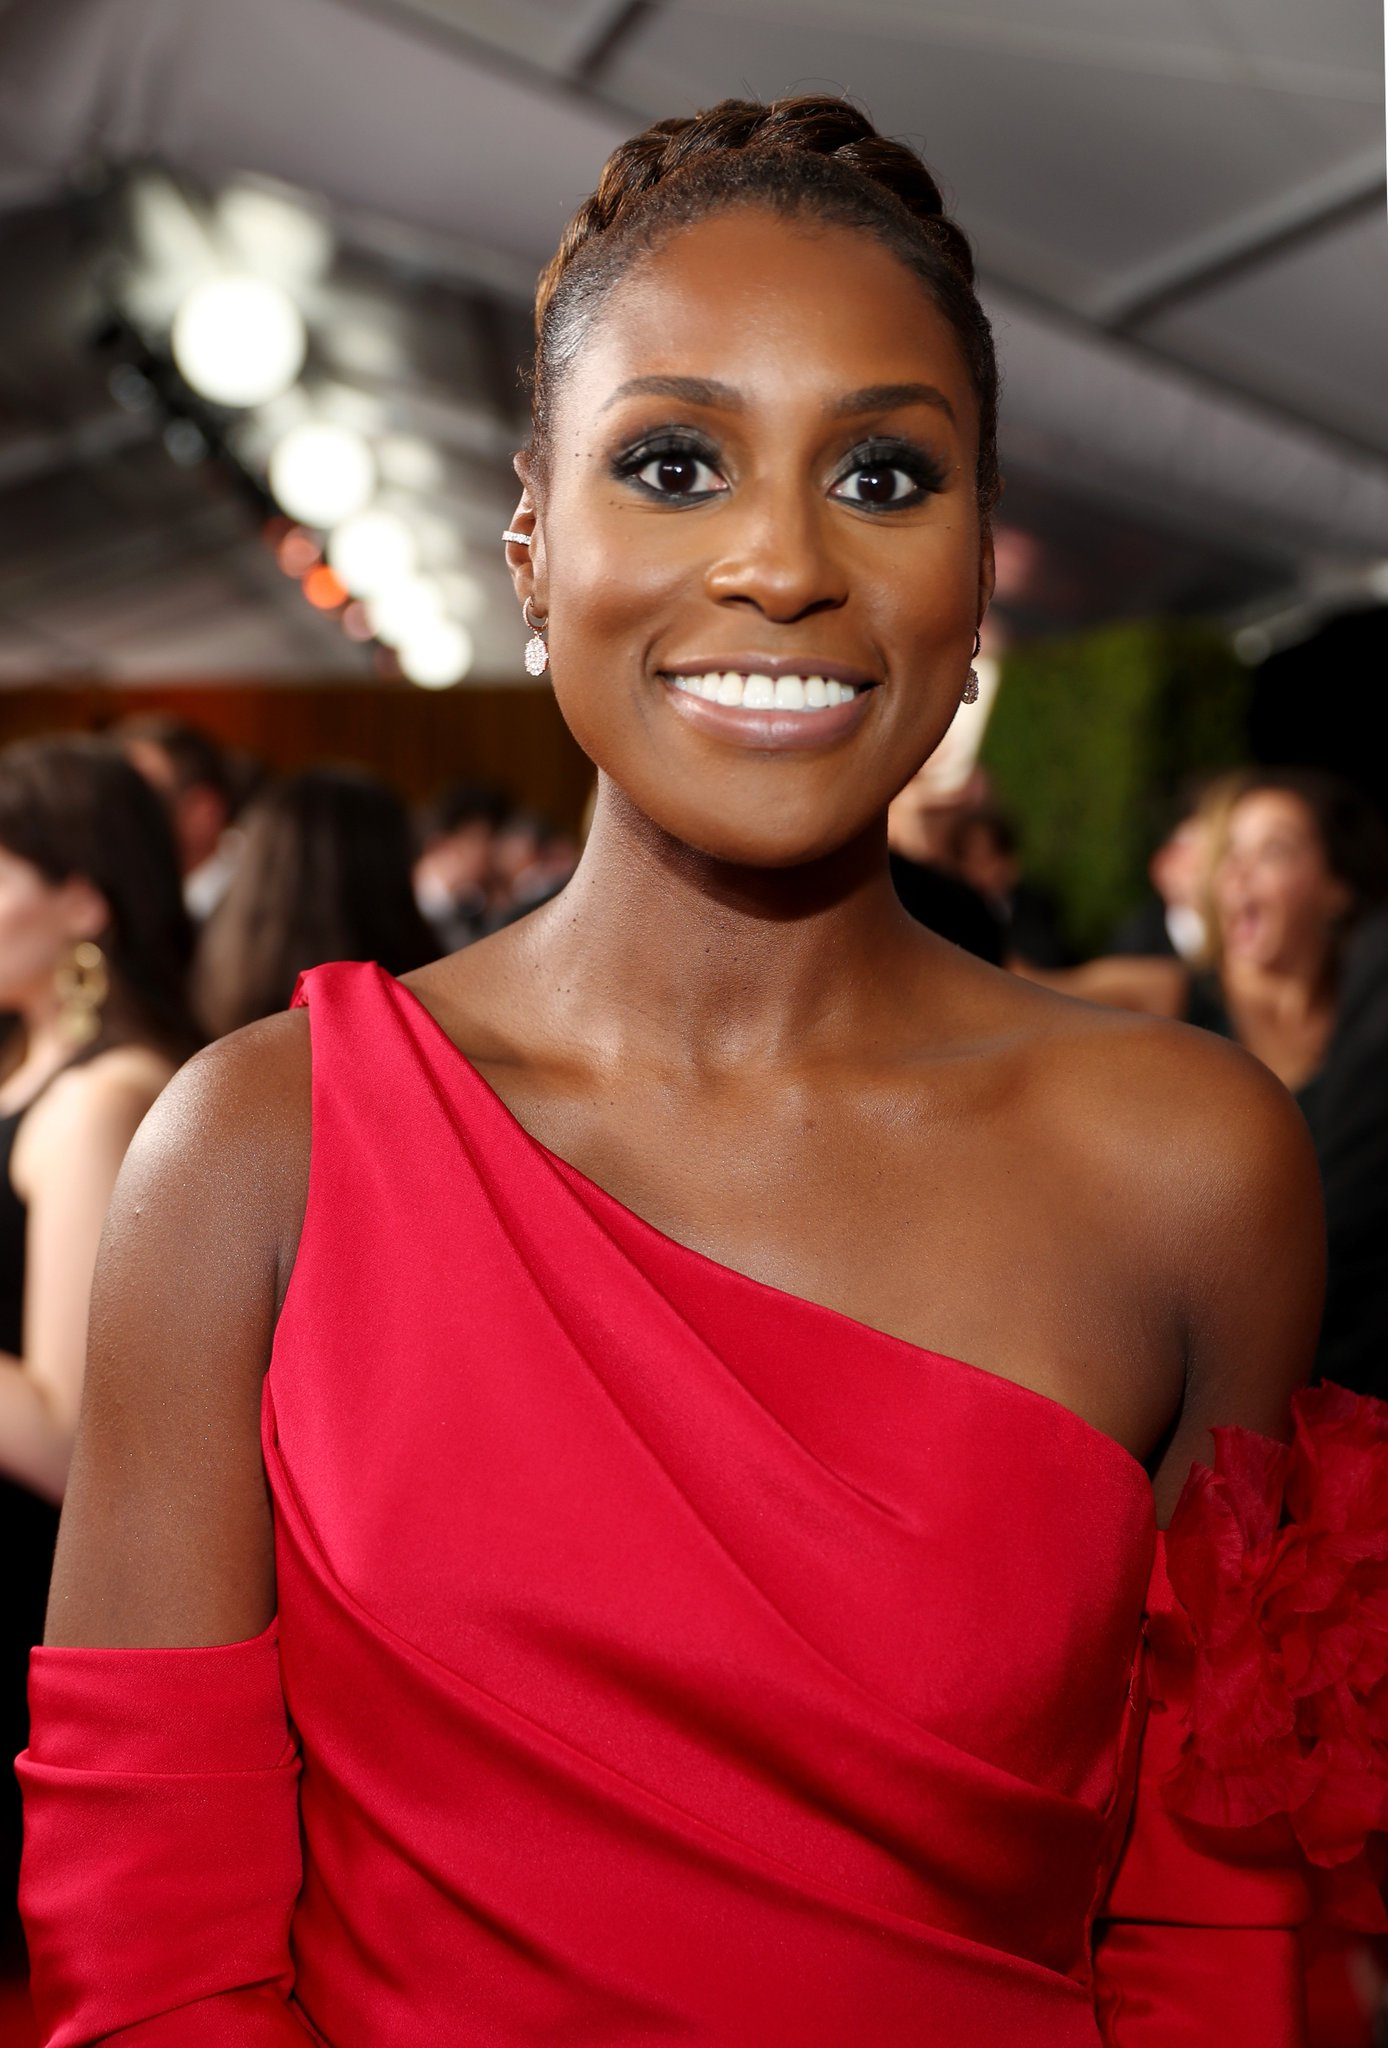 .@IssaRae is holding a contest to find new music for Insecure. https://t.co/67ZzX9ROpE https://t.co/q2GnAURQVh